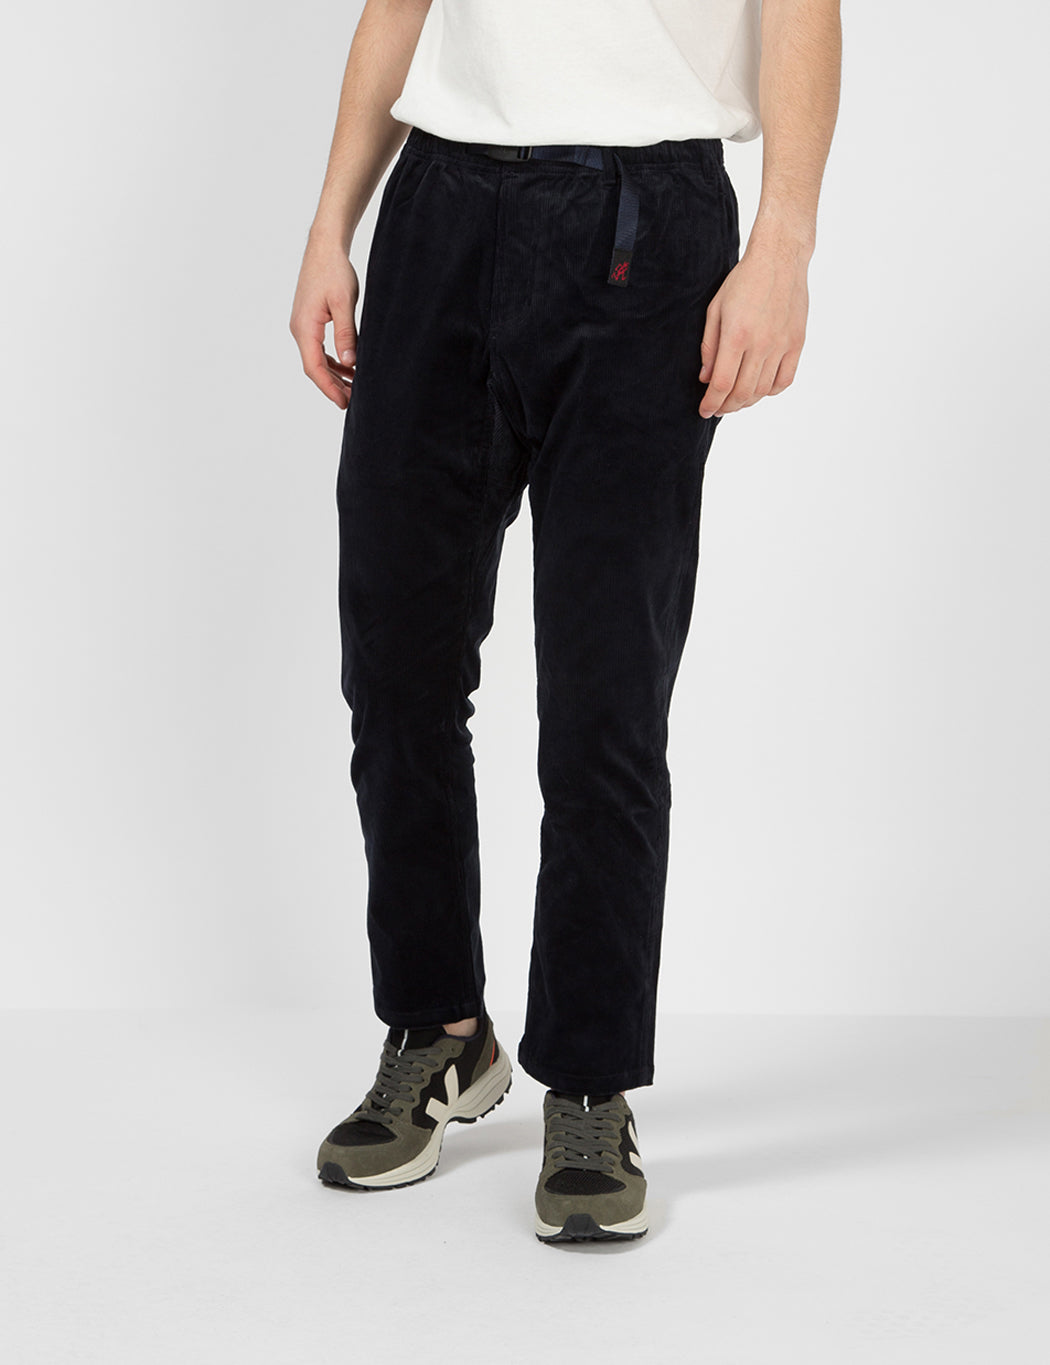 Gramicci Corduroy NN-Pants (Regular Fit) - Double Navy | URBAN EXCESS.